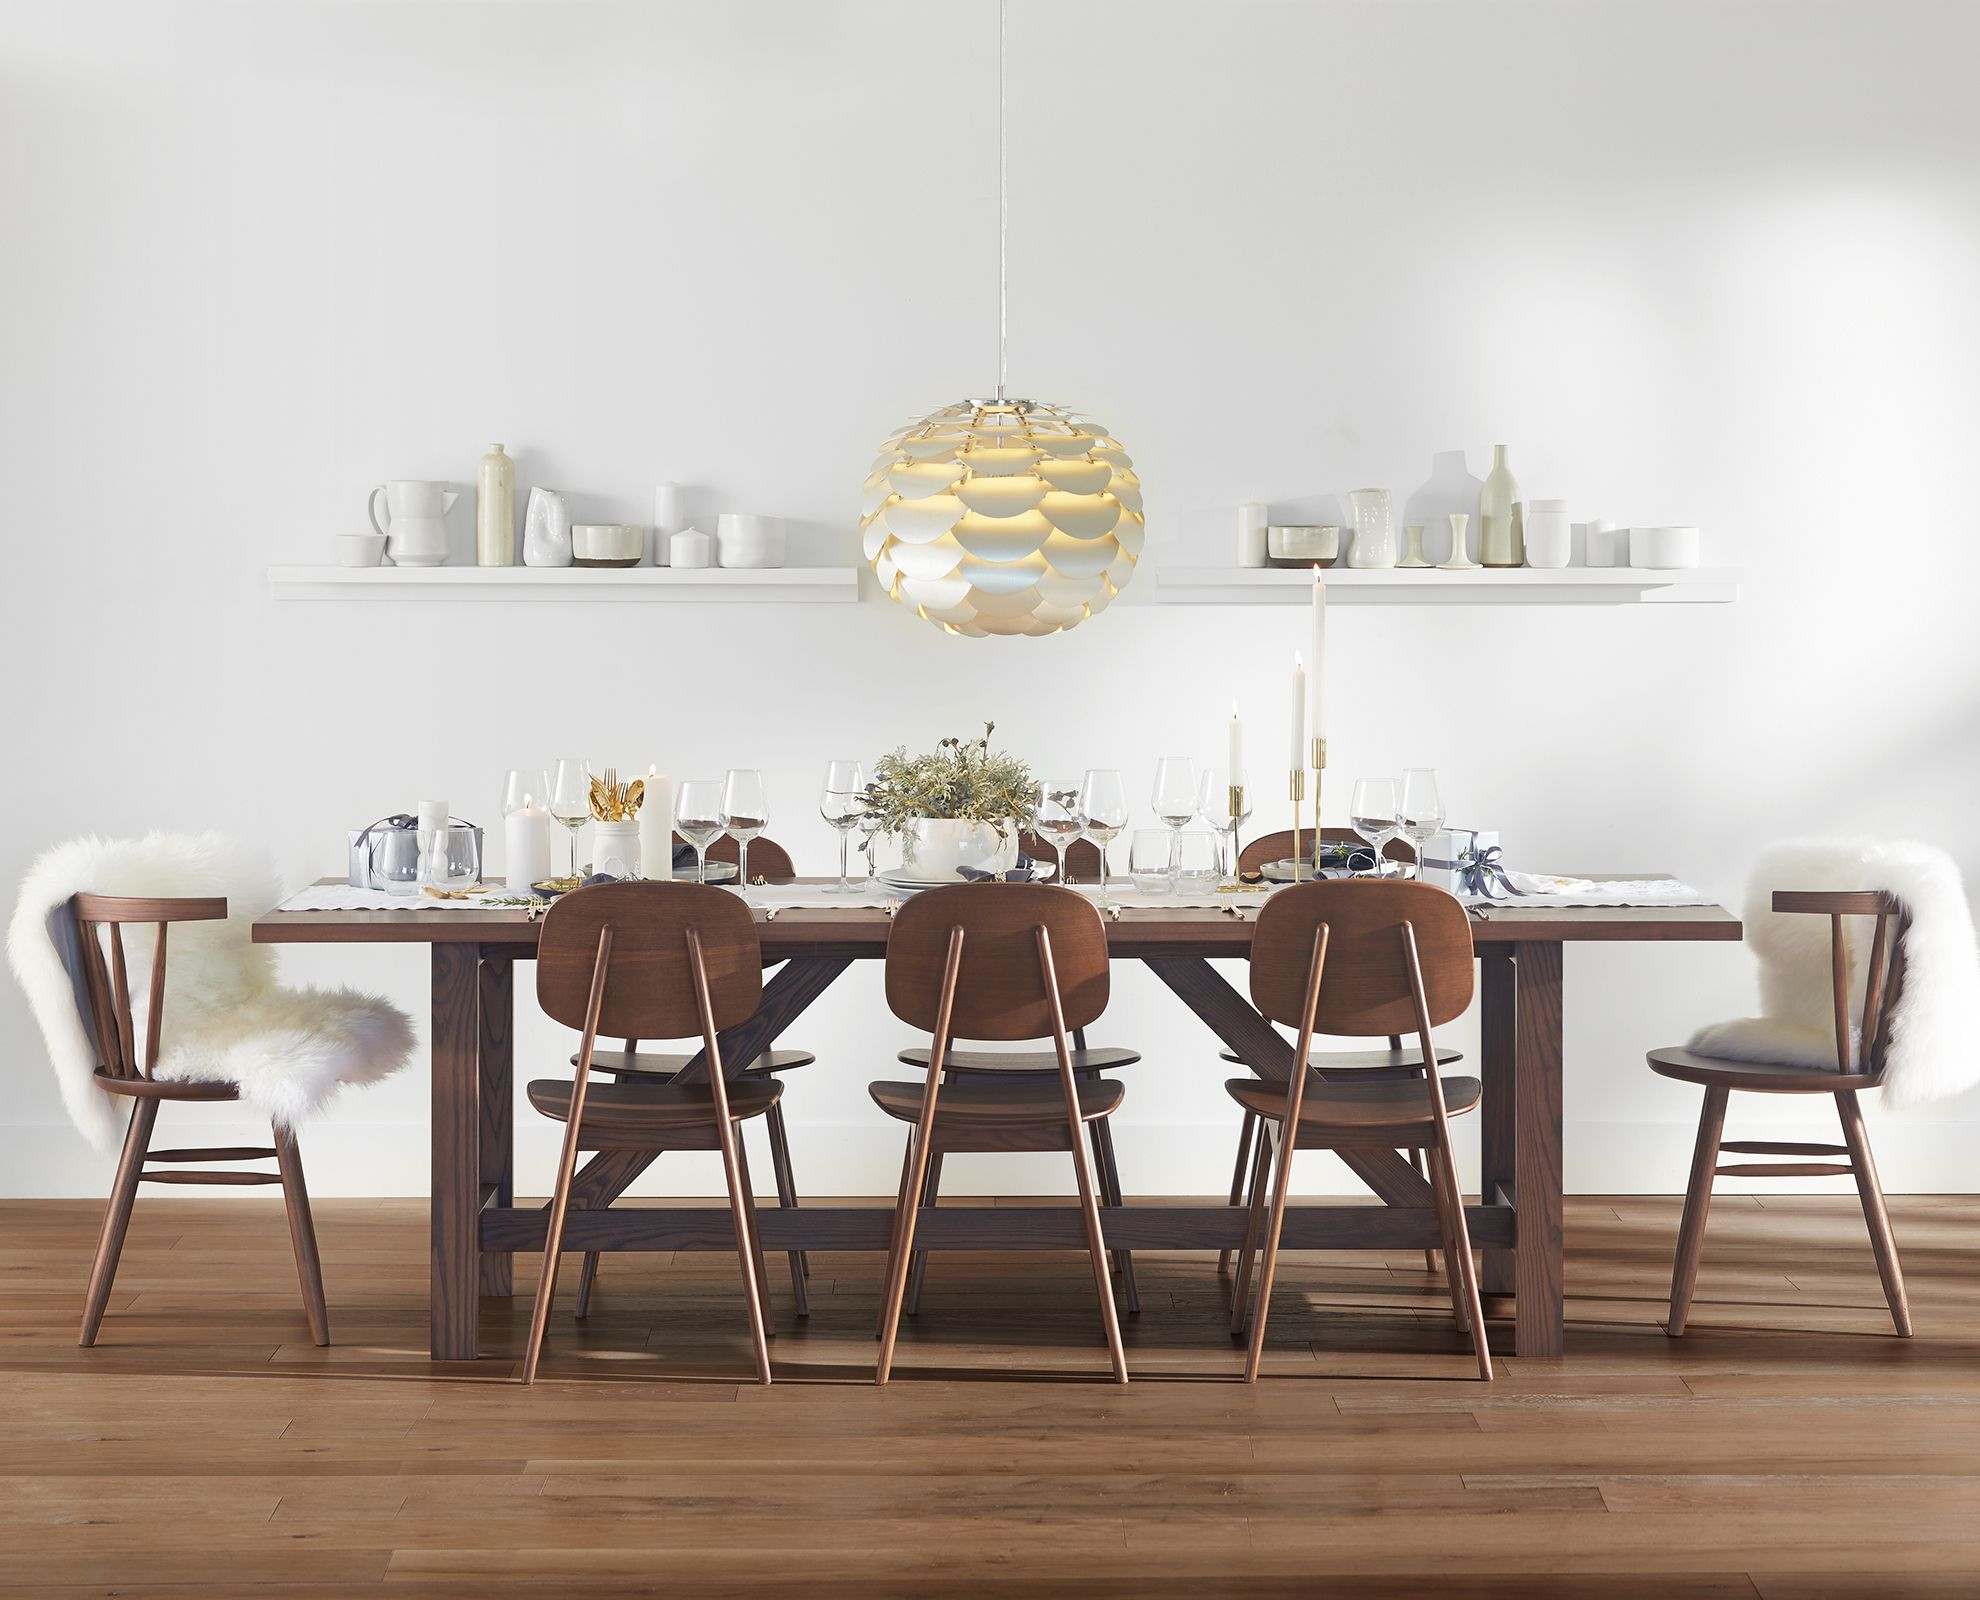 Vaerd dining chair mix and match tables and chairs for Scandinavian design furniture